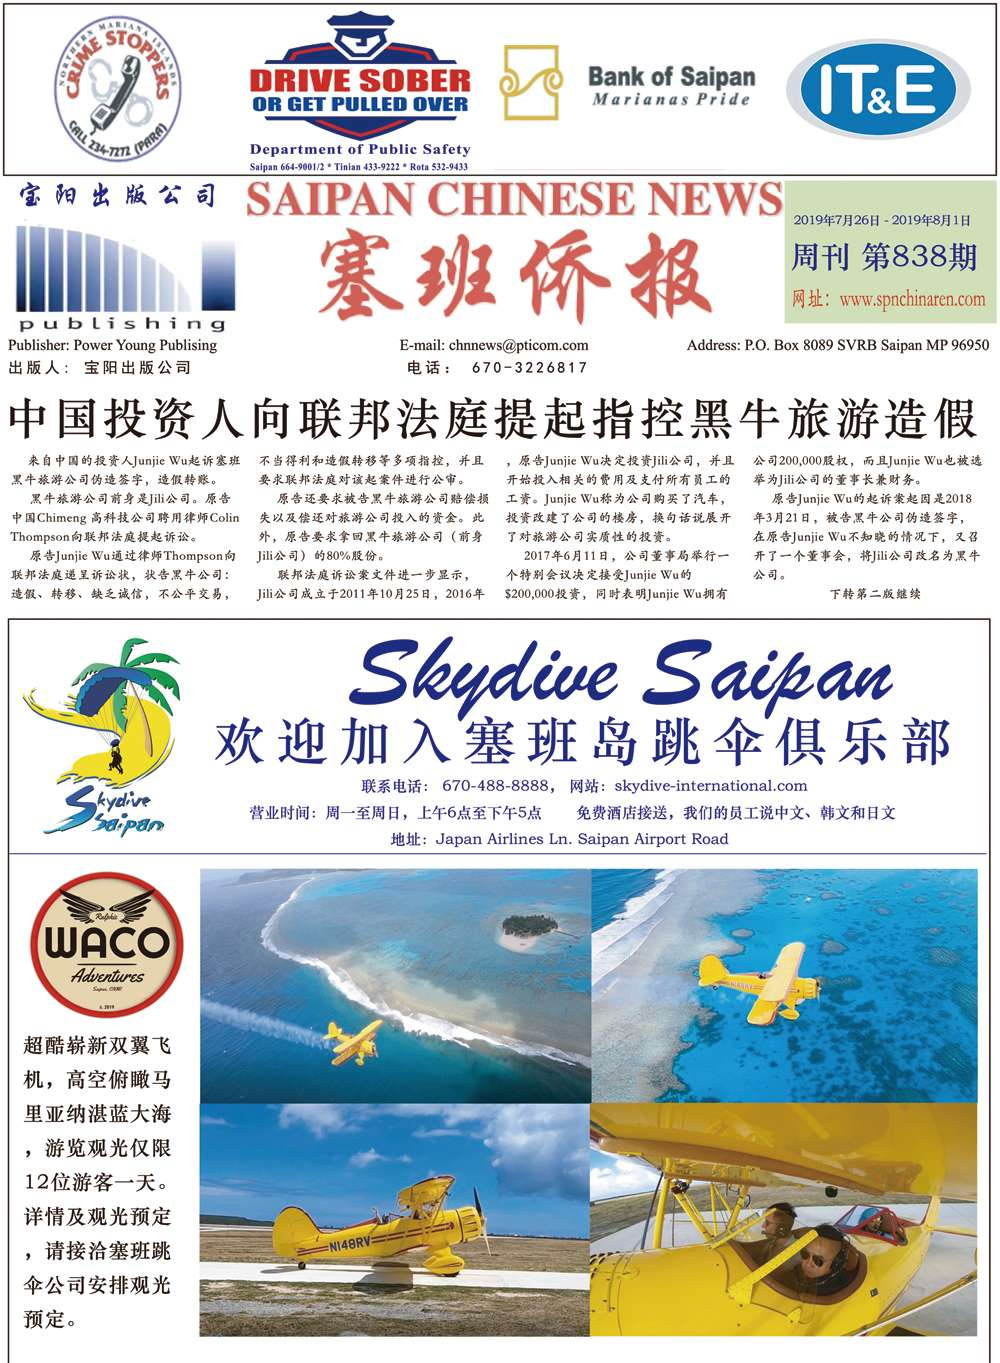 cover page [转换].jpg